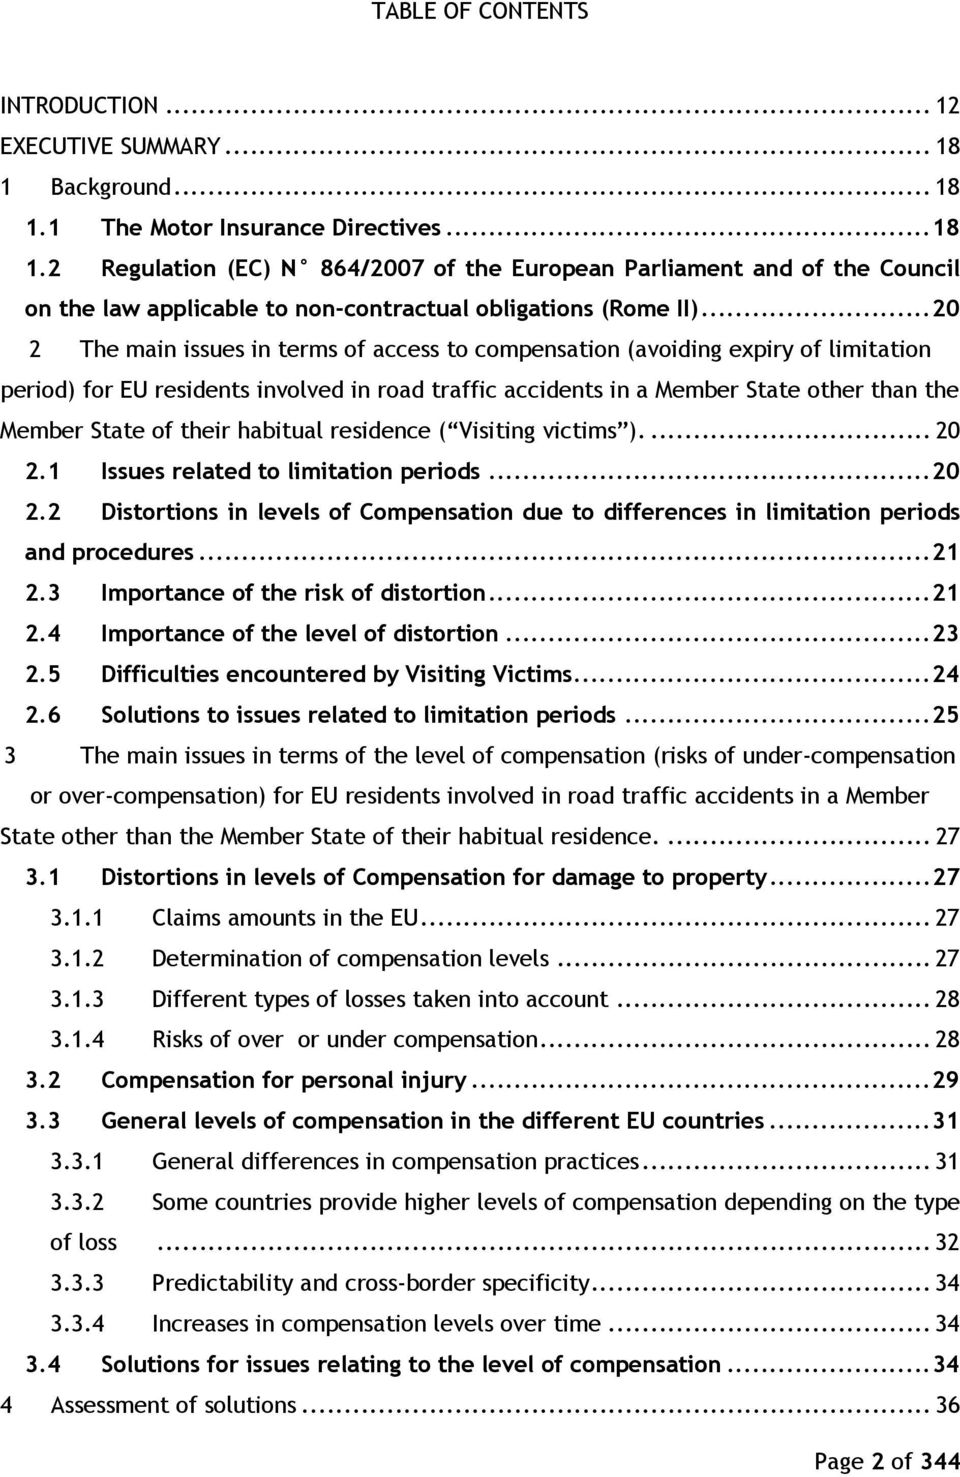 ..20 2 The main issues in terms of access to compensation (avoiding expiry of limitation period) for EU residents involved in road traffic accidents in a Member State other than the Member State of